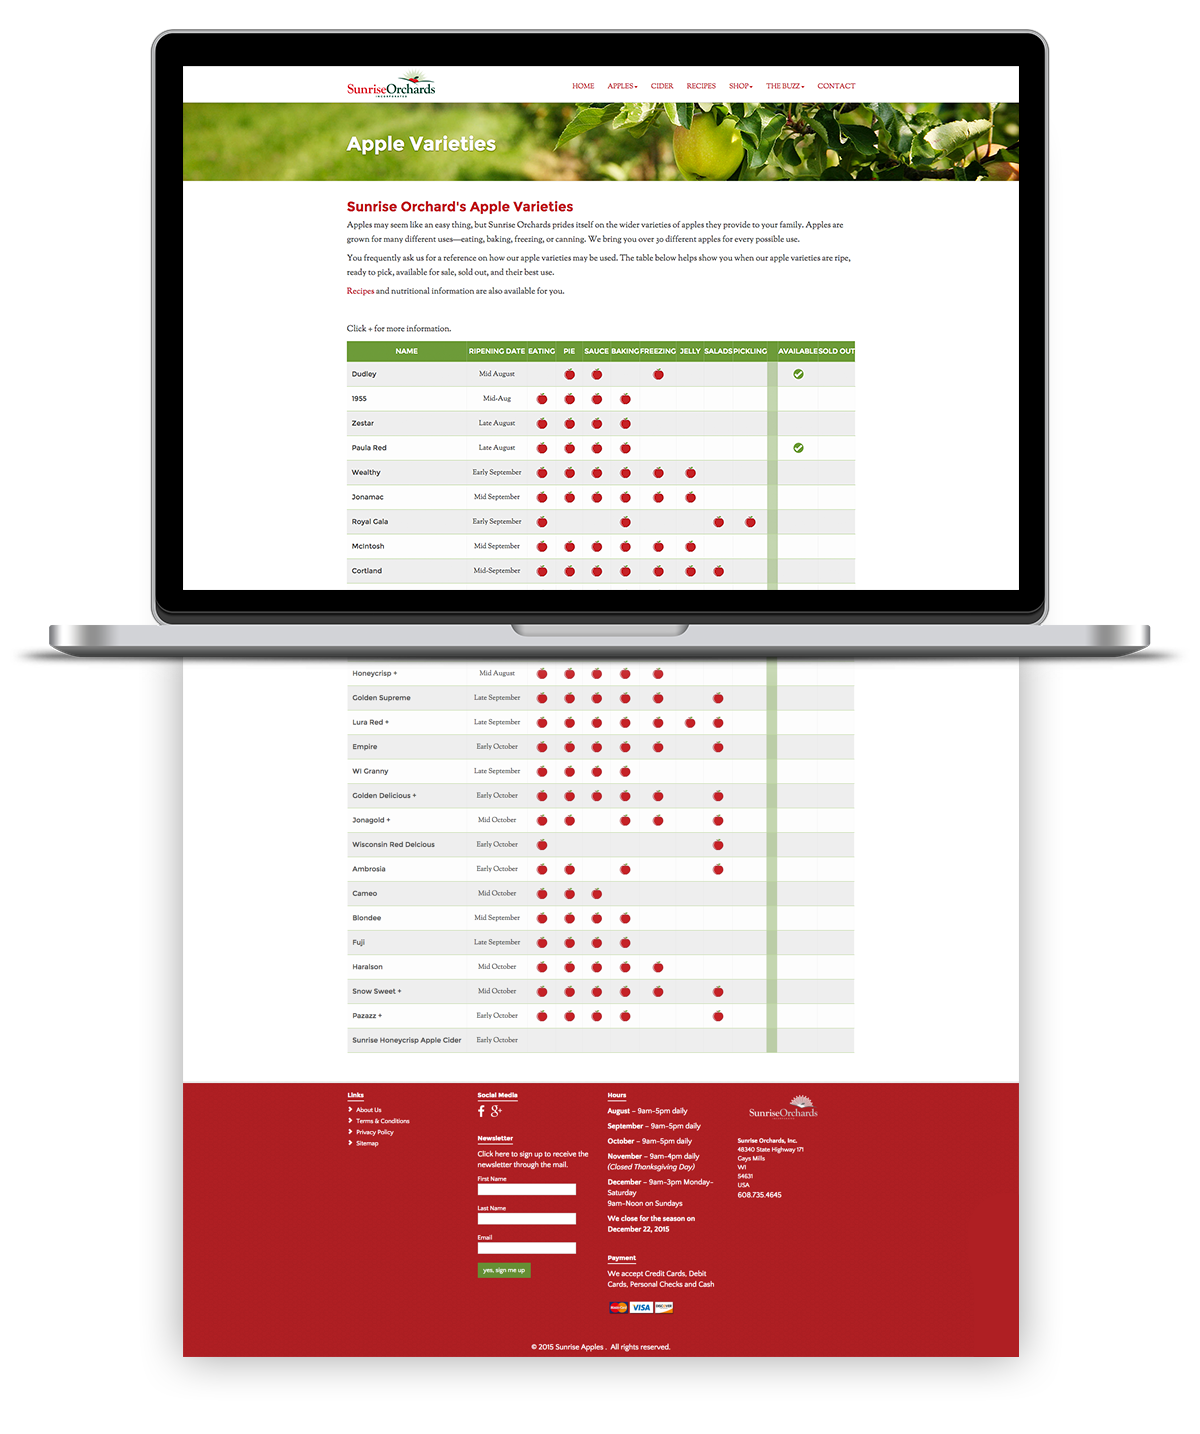 Image of the custom table and functionality for apple variety uses, availability and status for sale as programmed and developed for Sunrise apples by illumin8 marketing.